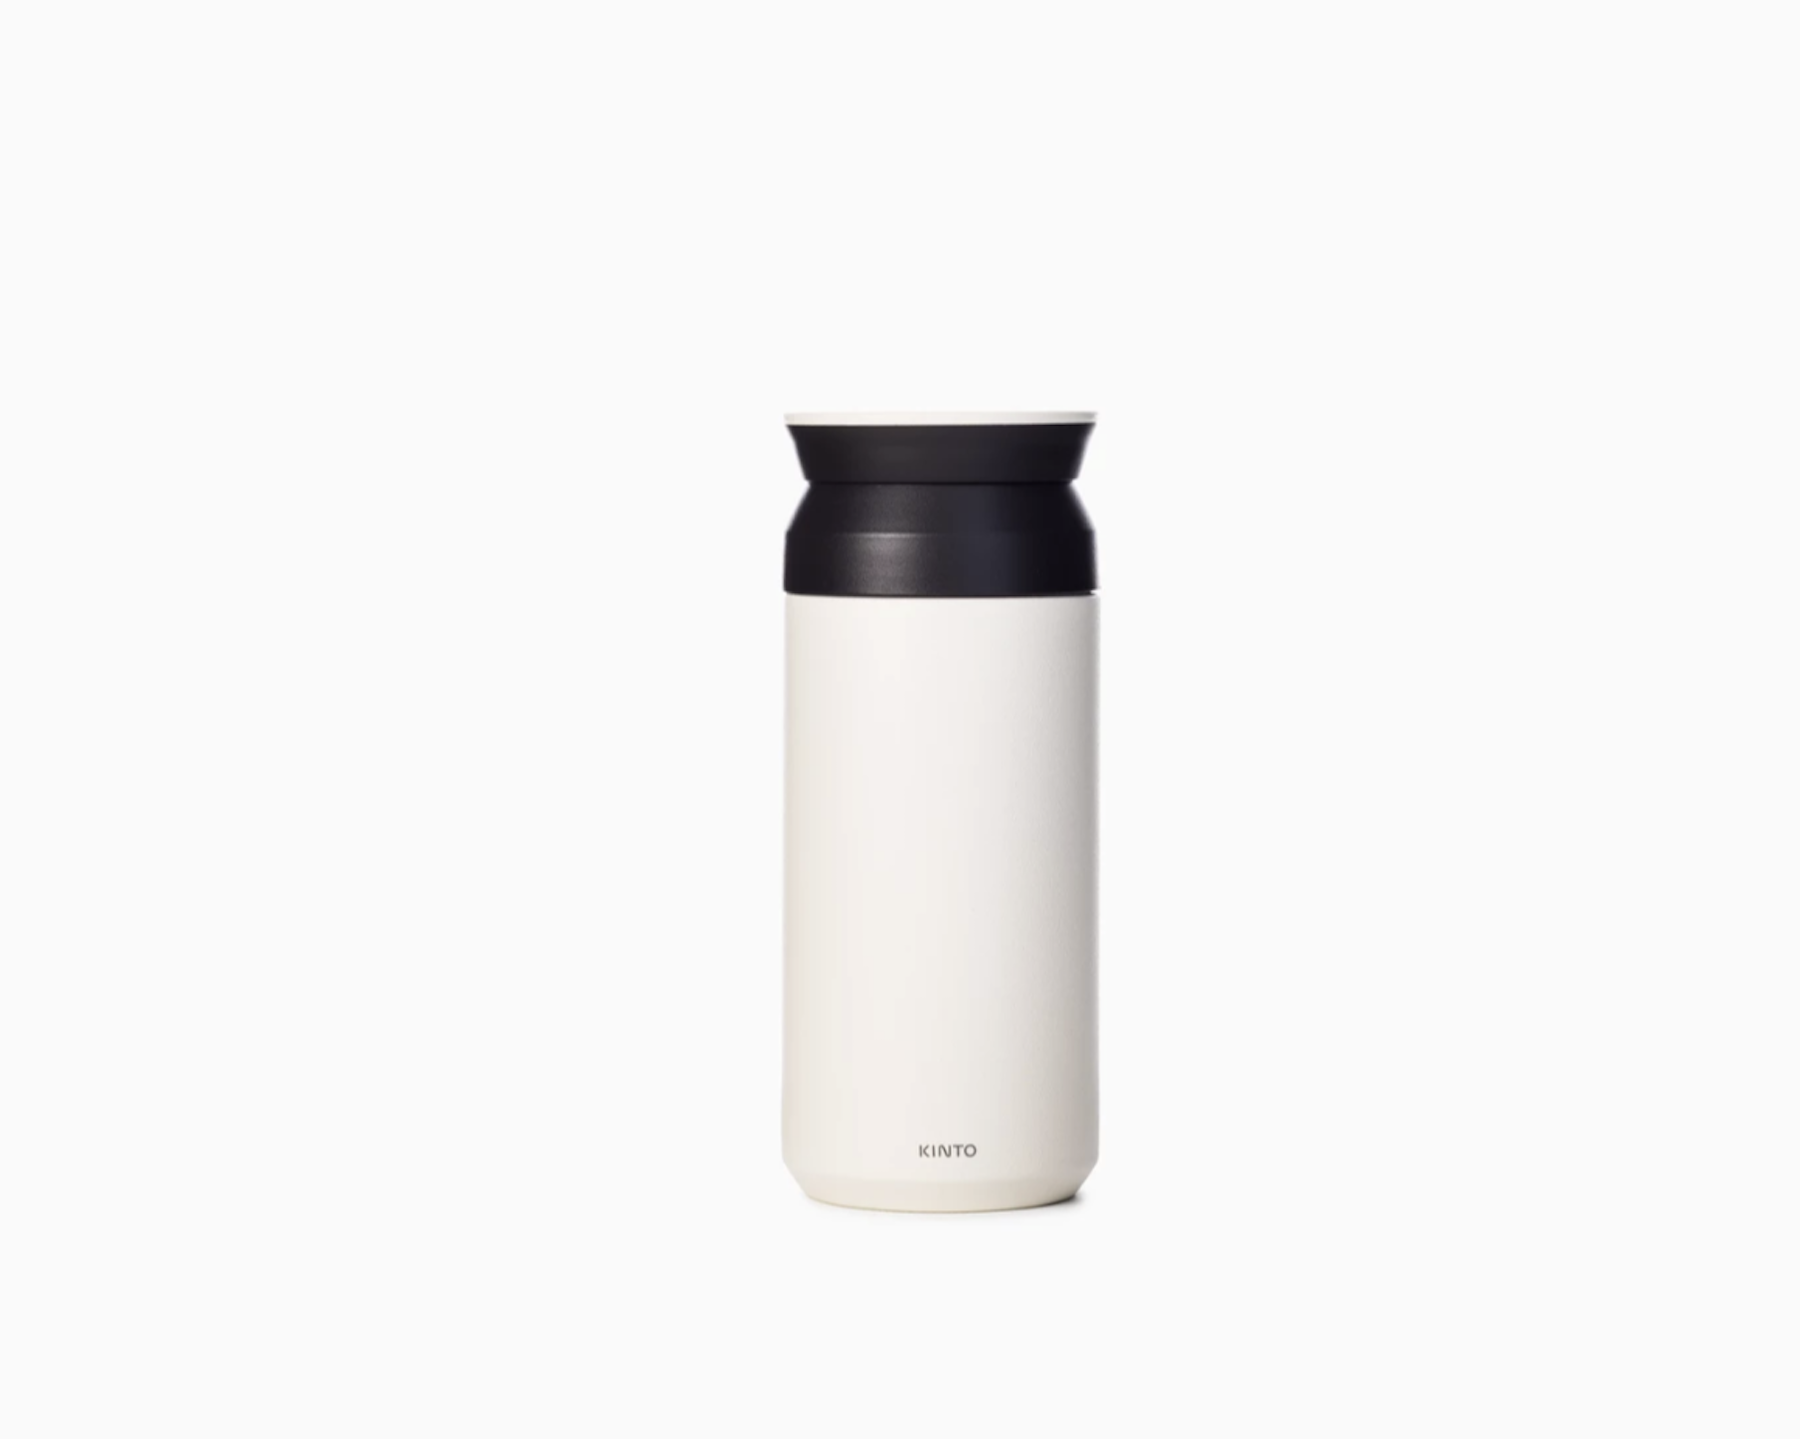 Image of the white Kinto Travel Tumbler